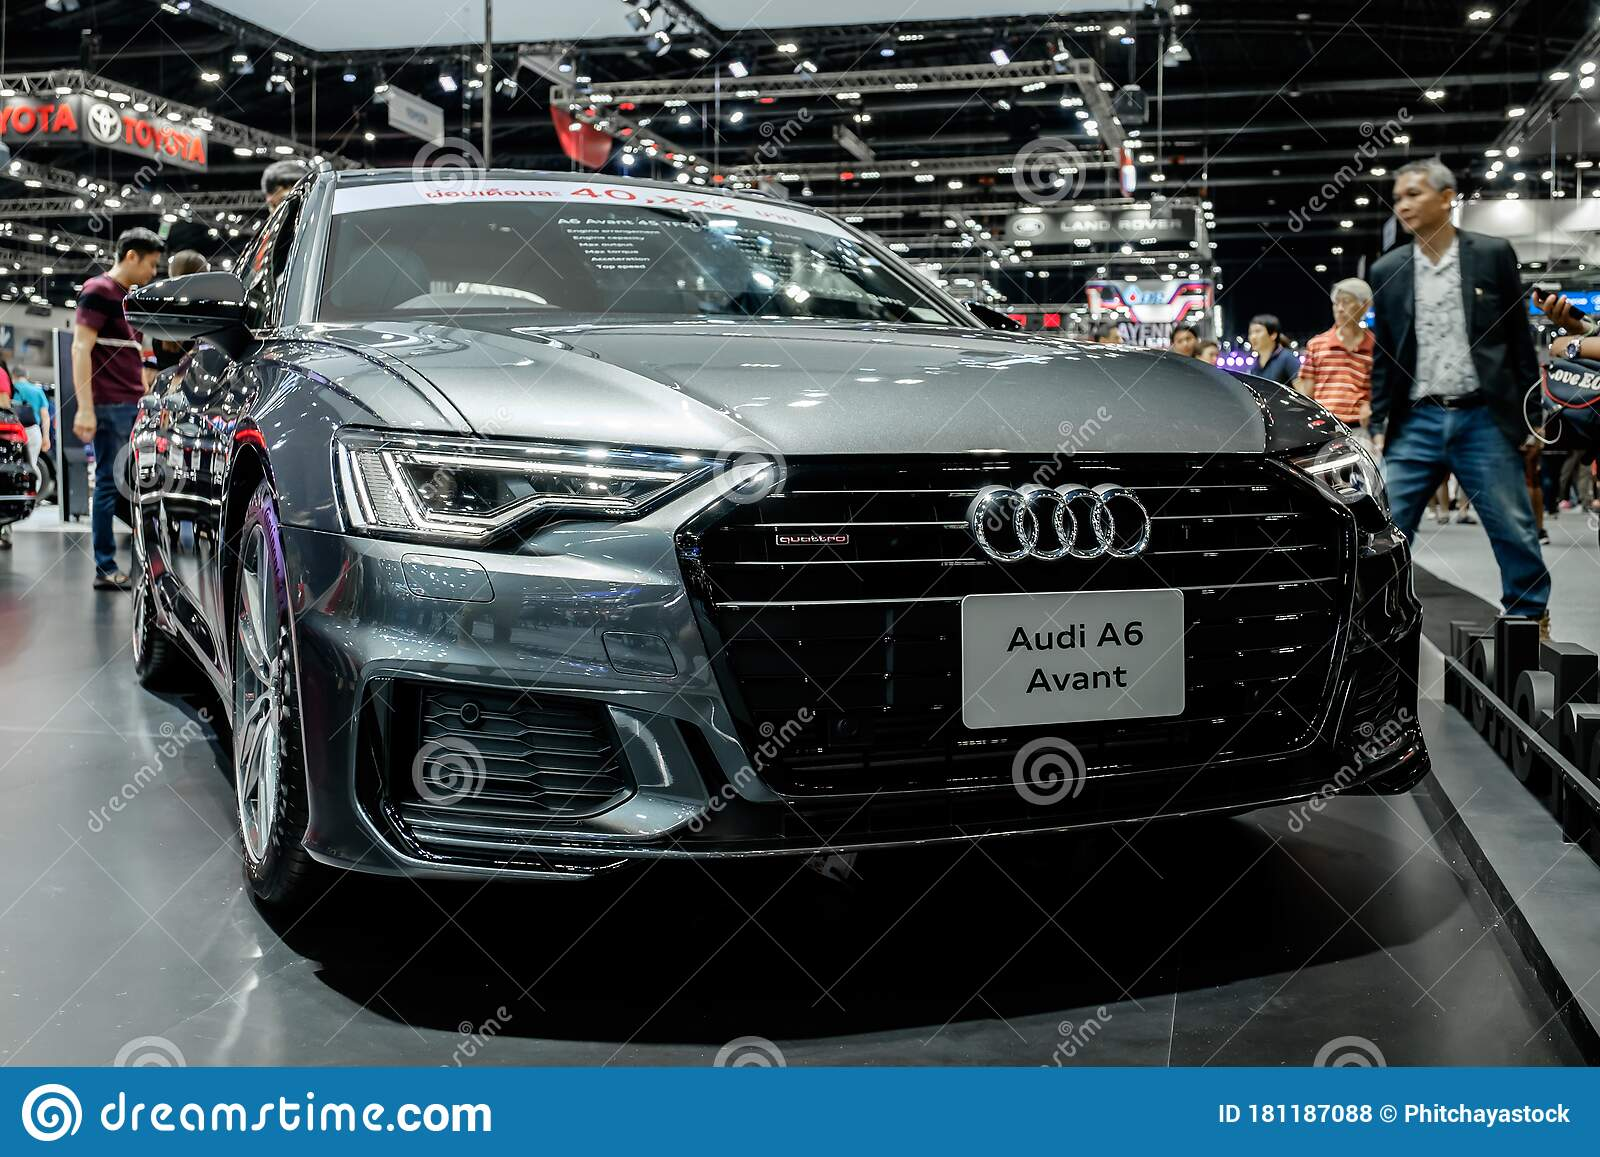 The Silver Audi A6 Avant 55tfsi Quattro S Line Showcase At Thailand Motor Expo 2019 Editorial Stock Photo Image Of Beautiful Motorshow 181187088